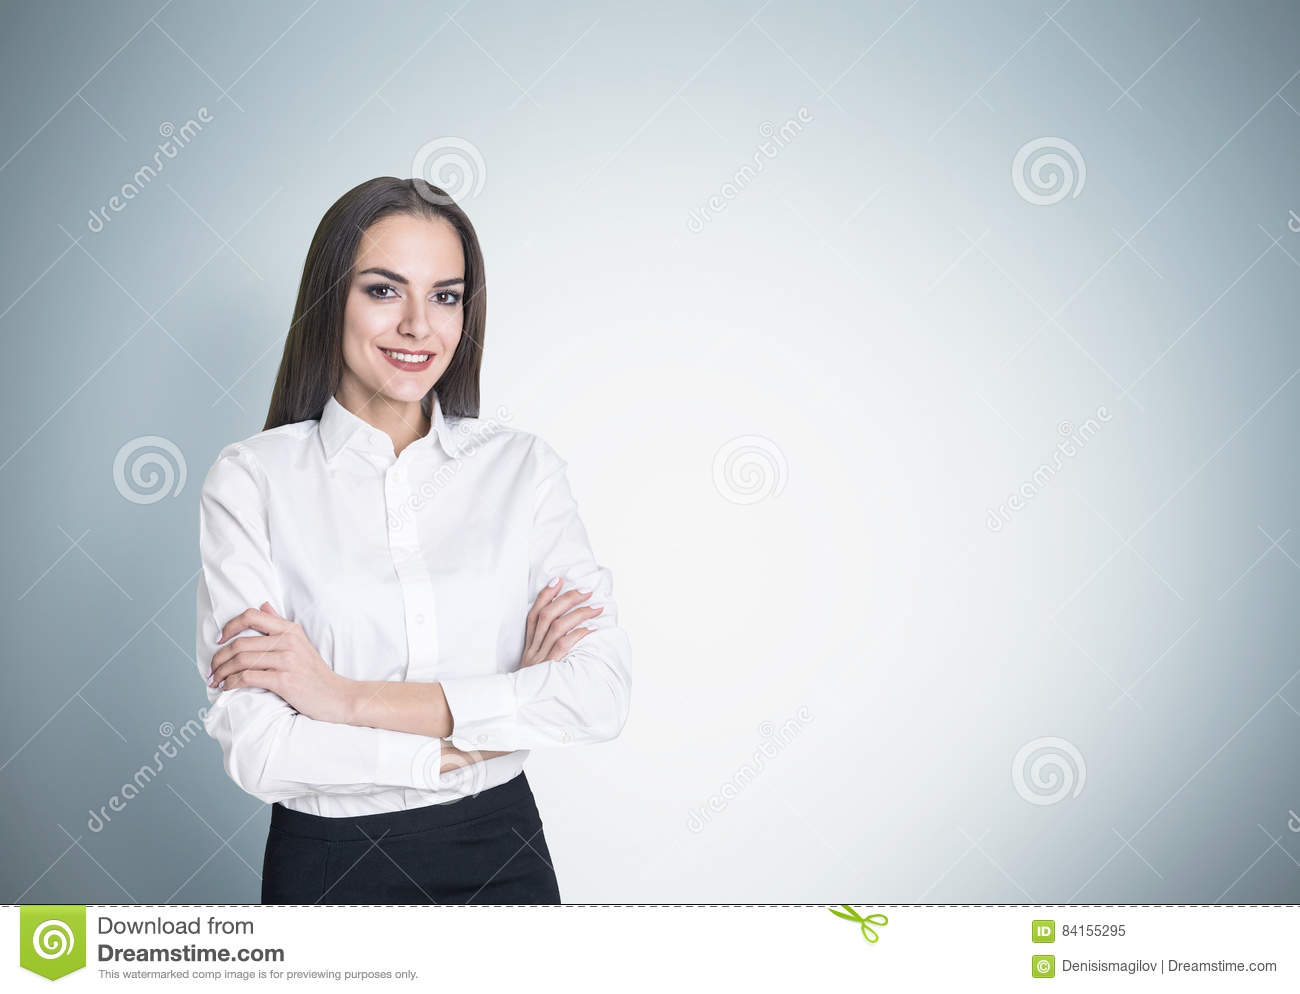 Portrait of a smiling businesswoman standing with her arms crossed near a gray wall and looking at the viewer with confidence.